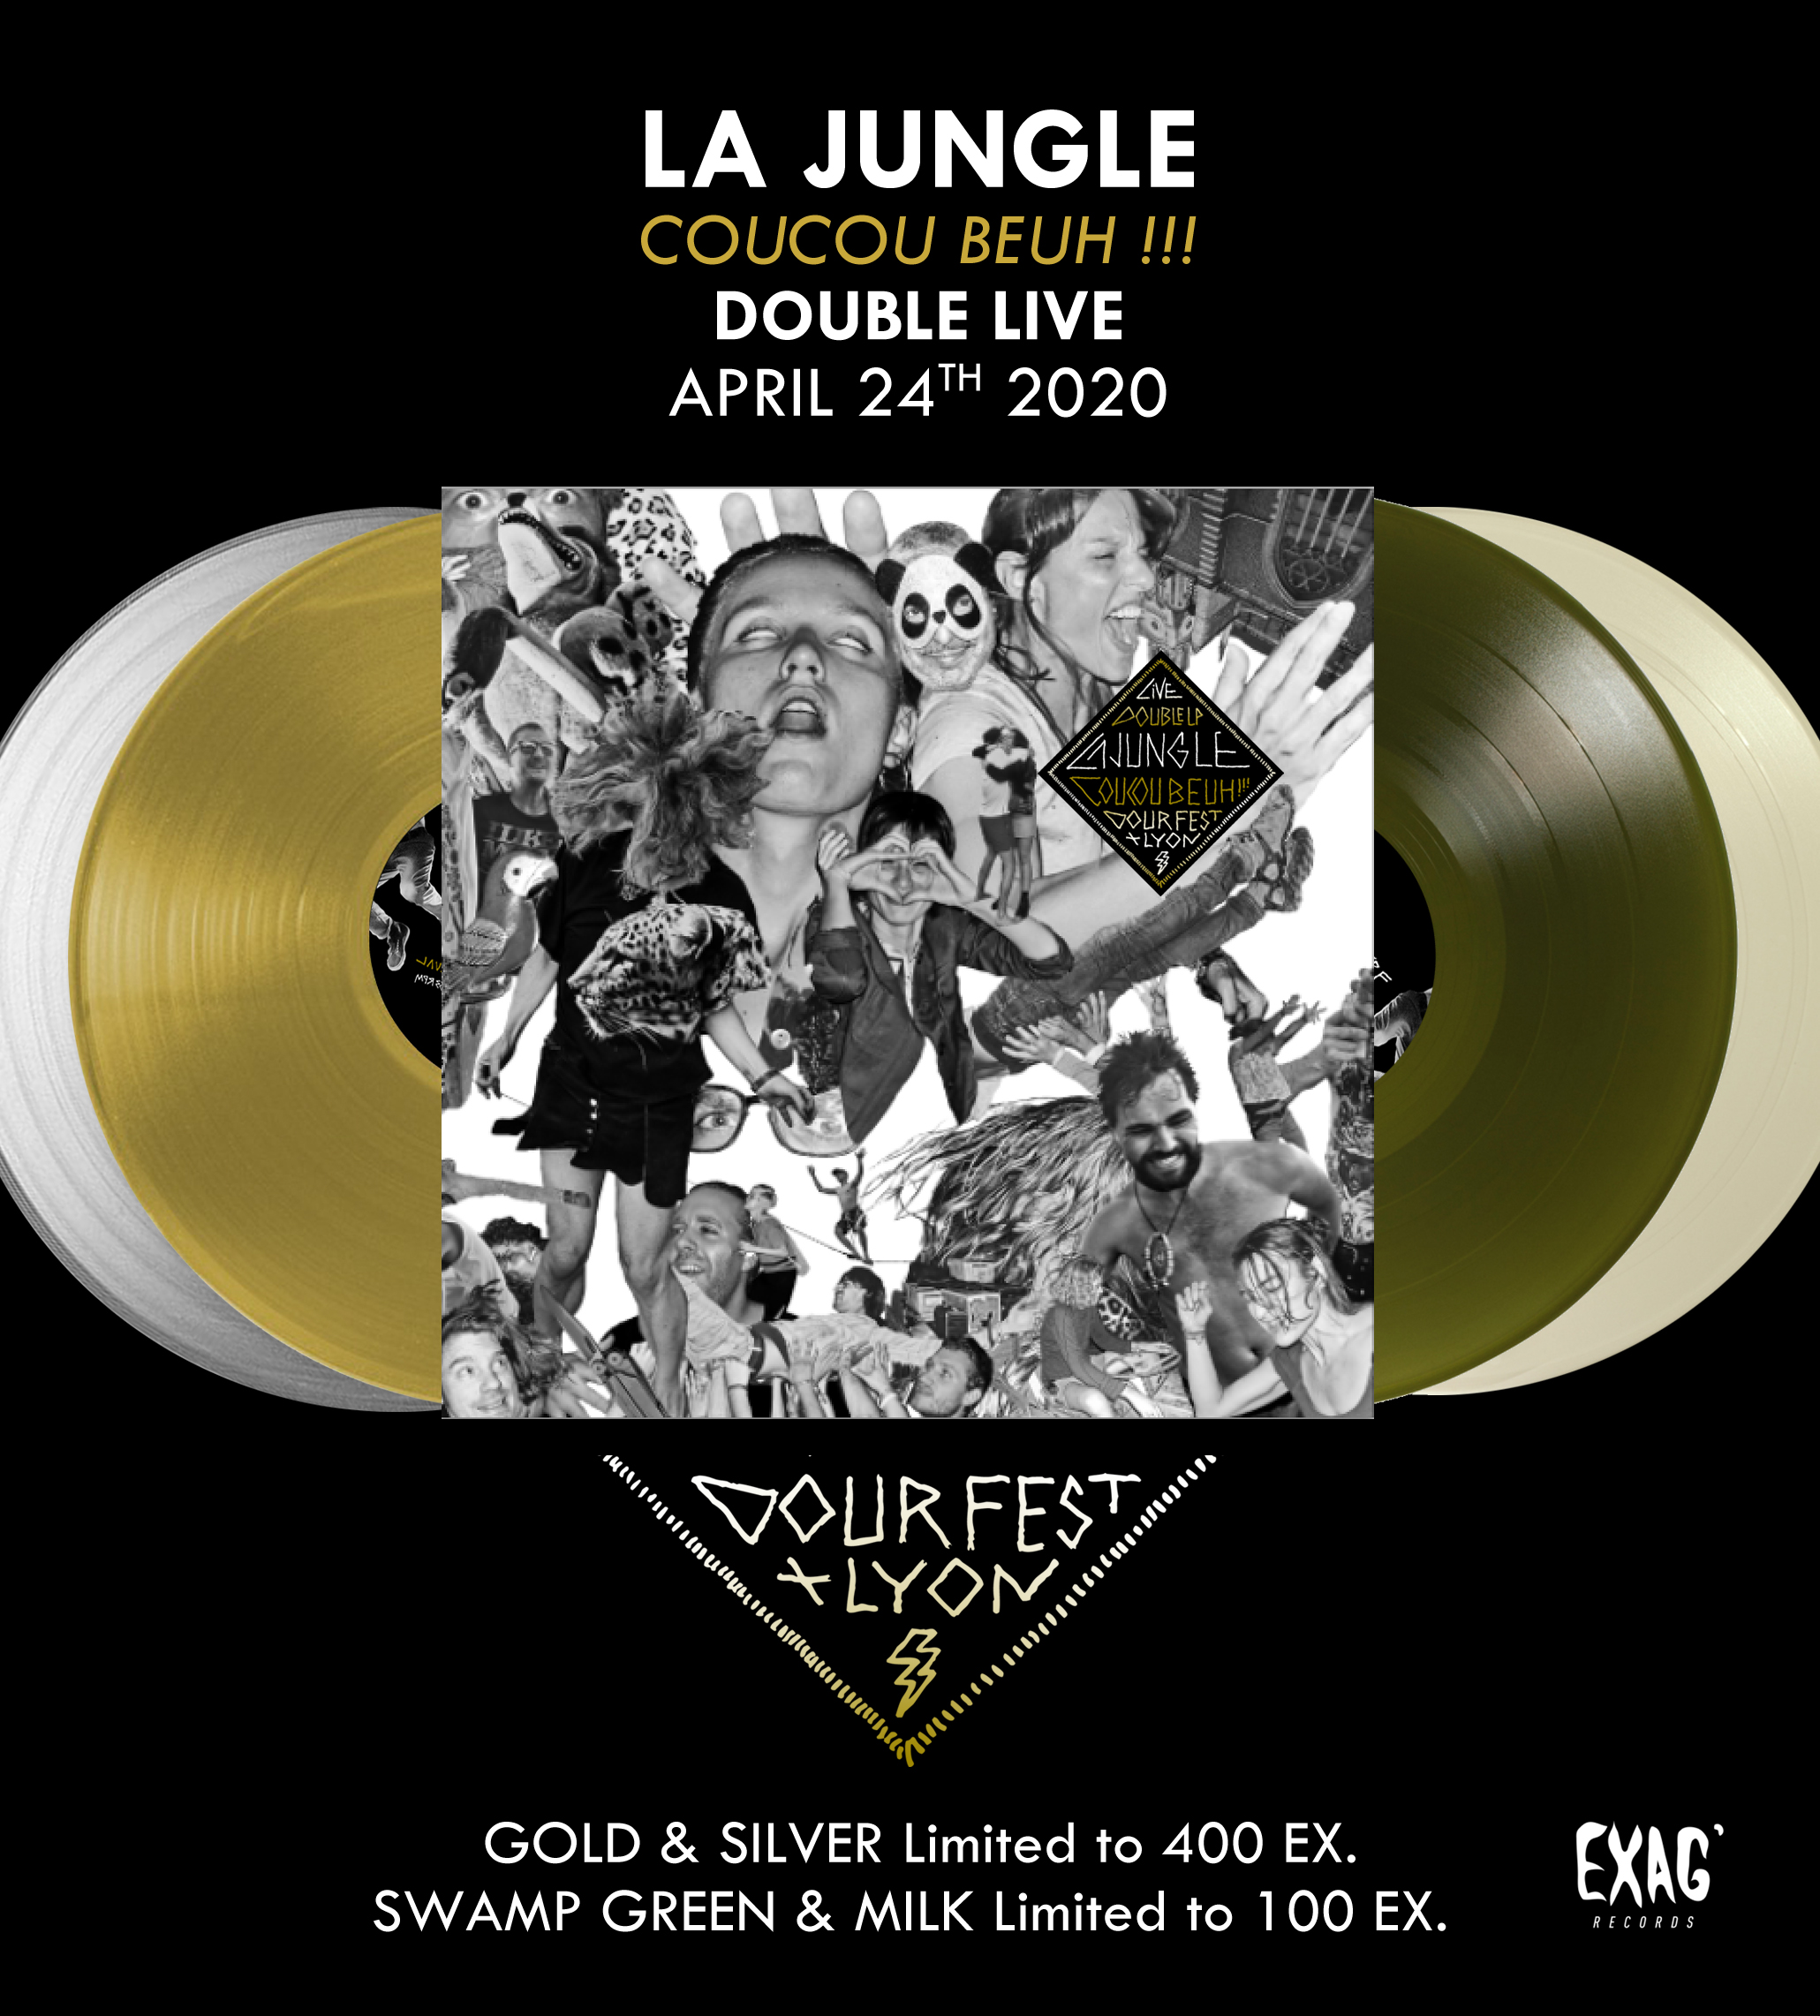 La Jungle live album 1 Mock-up 01.jpg